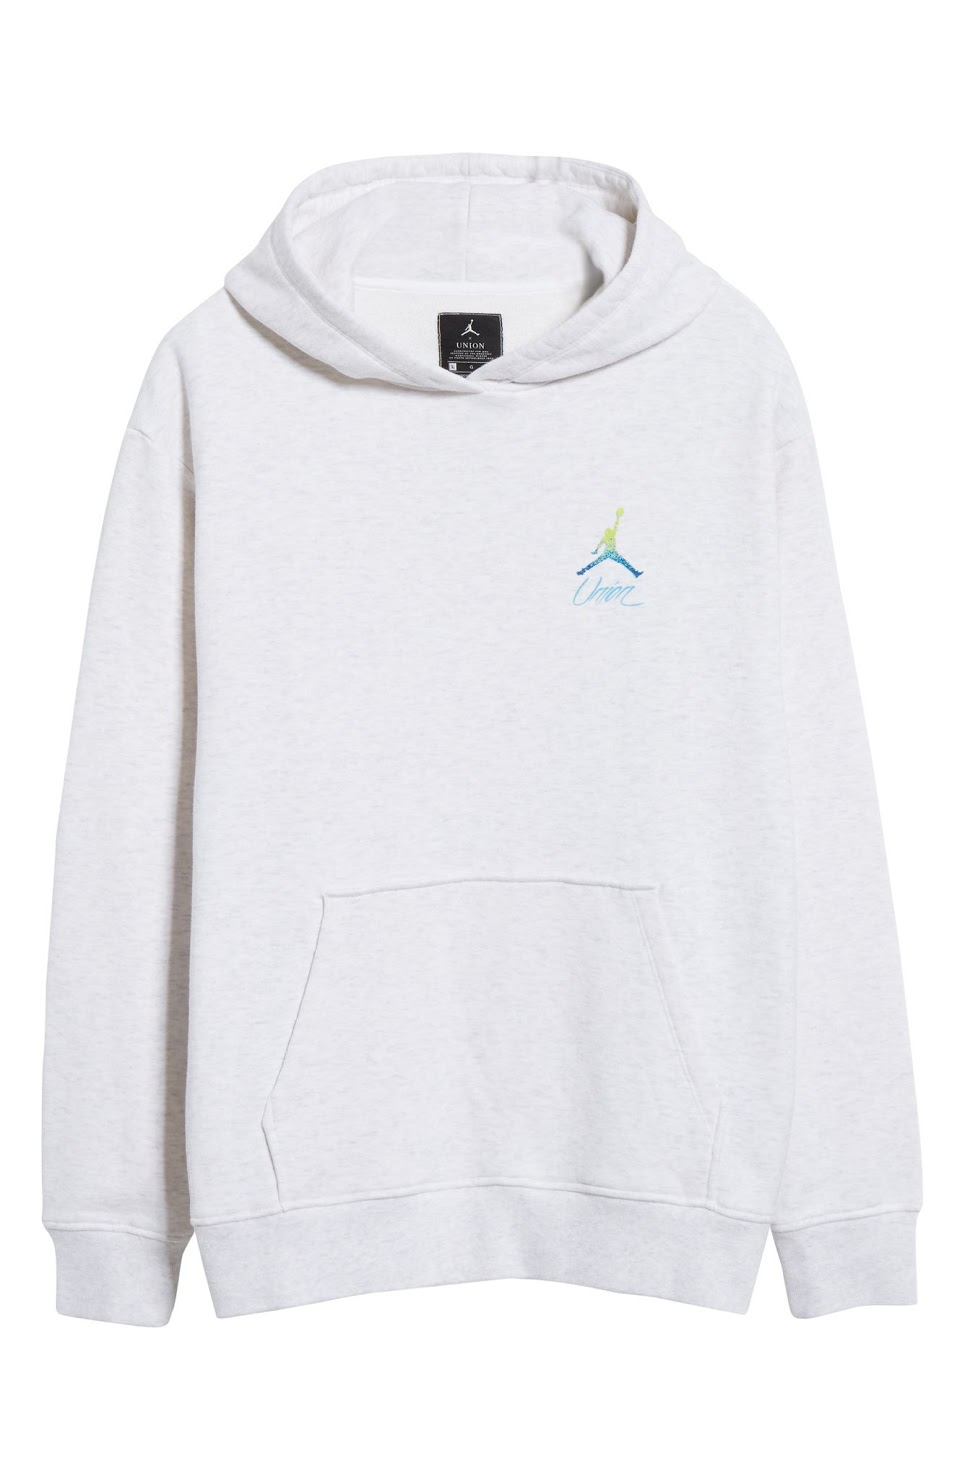 Jordan_Pullover Hoodie in Birch Heather_$80.jpeg